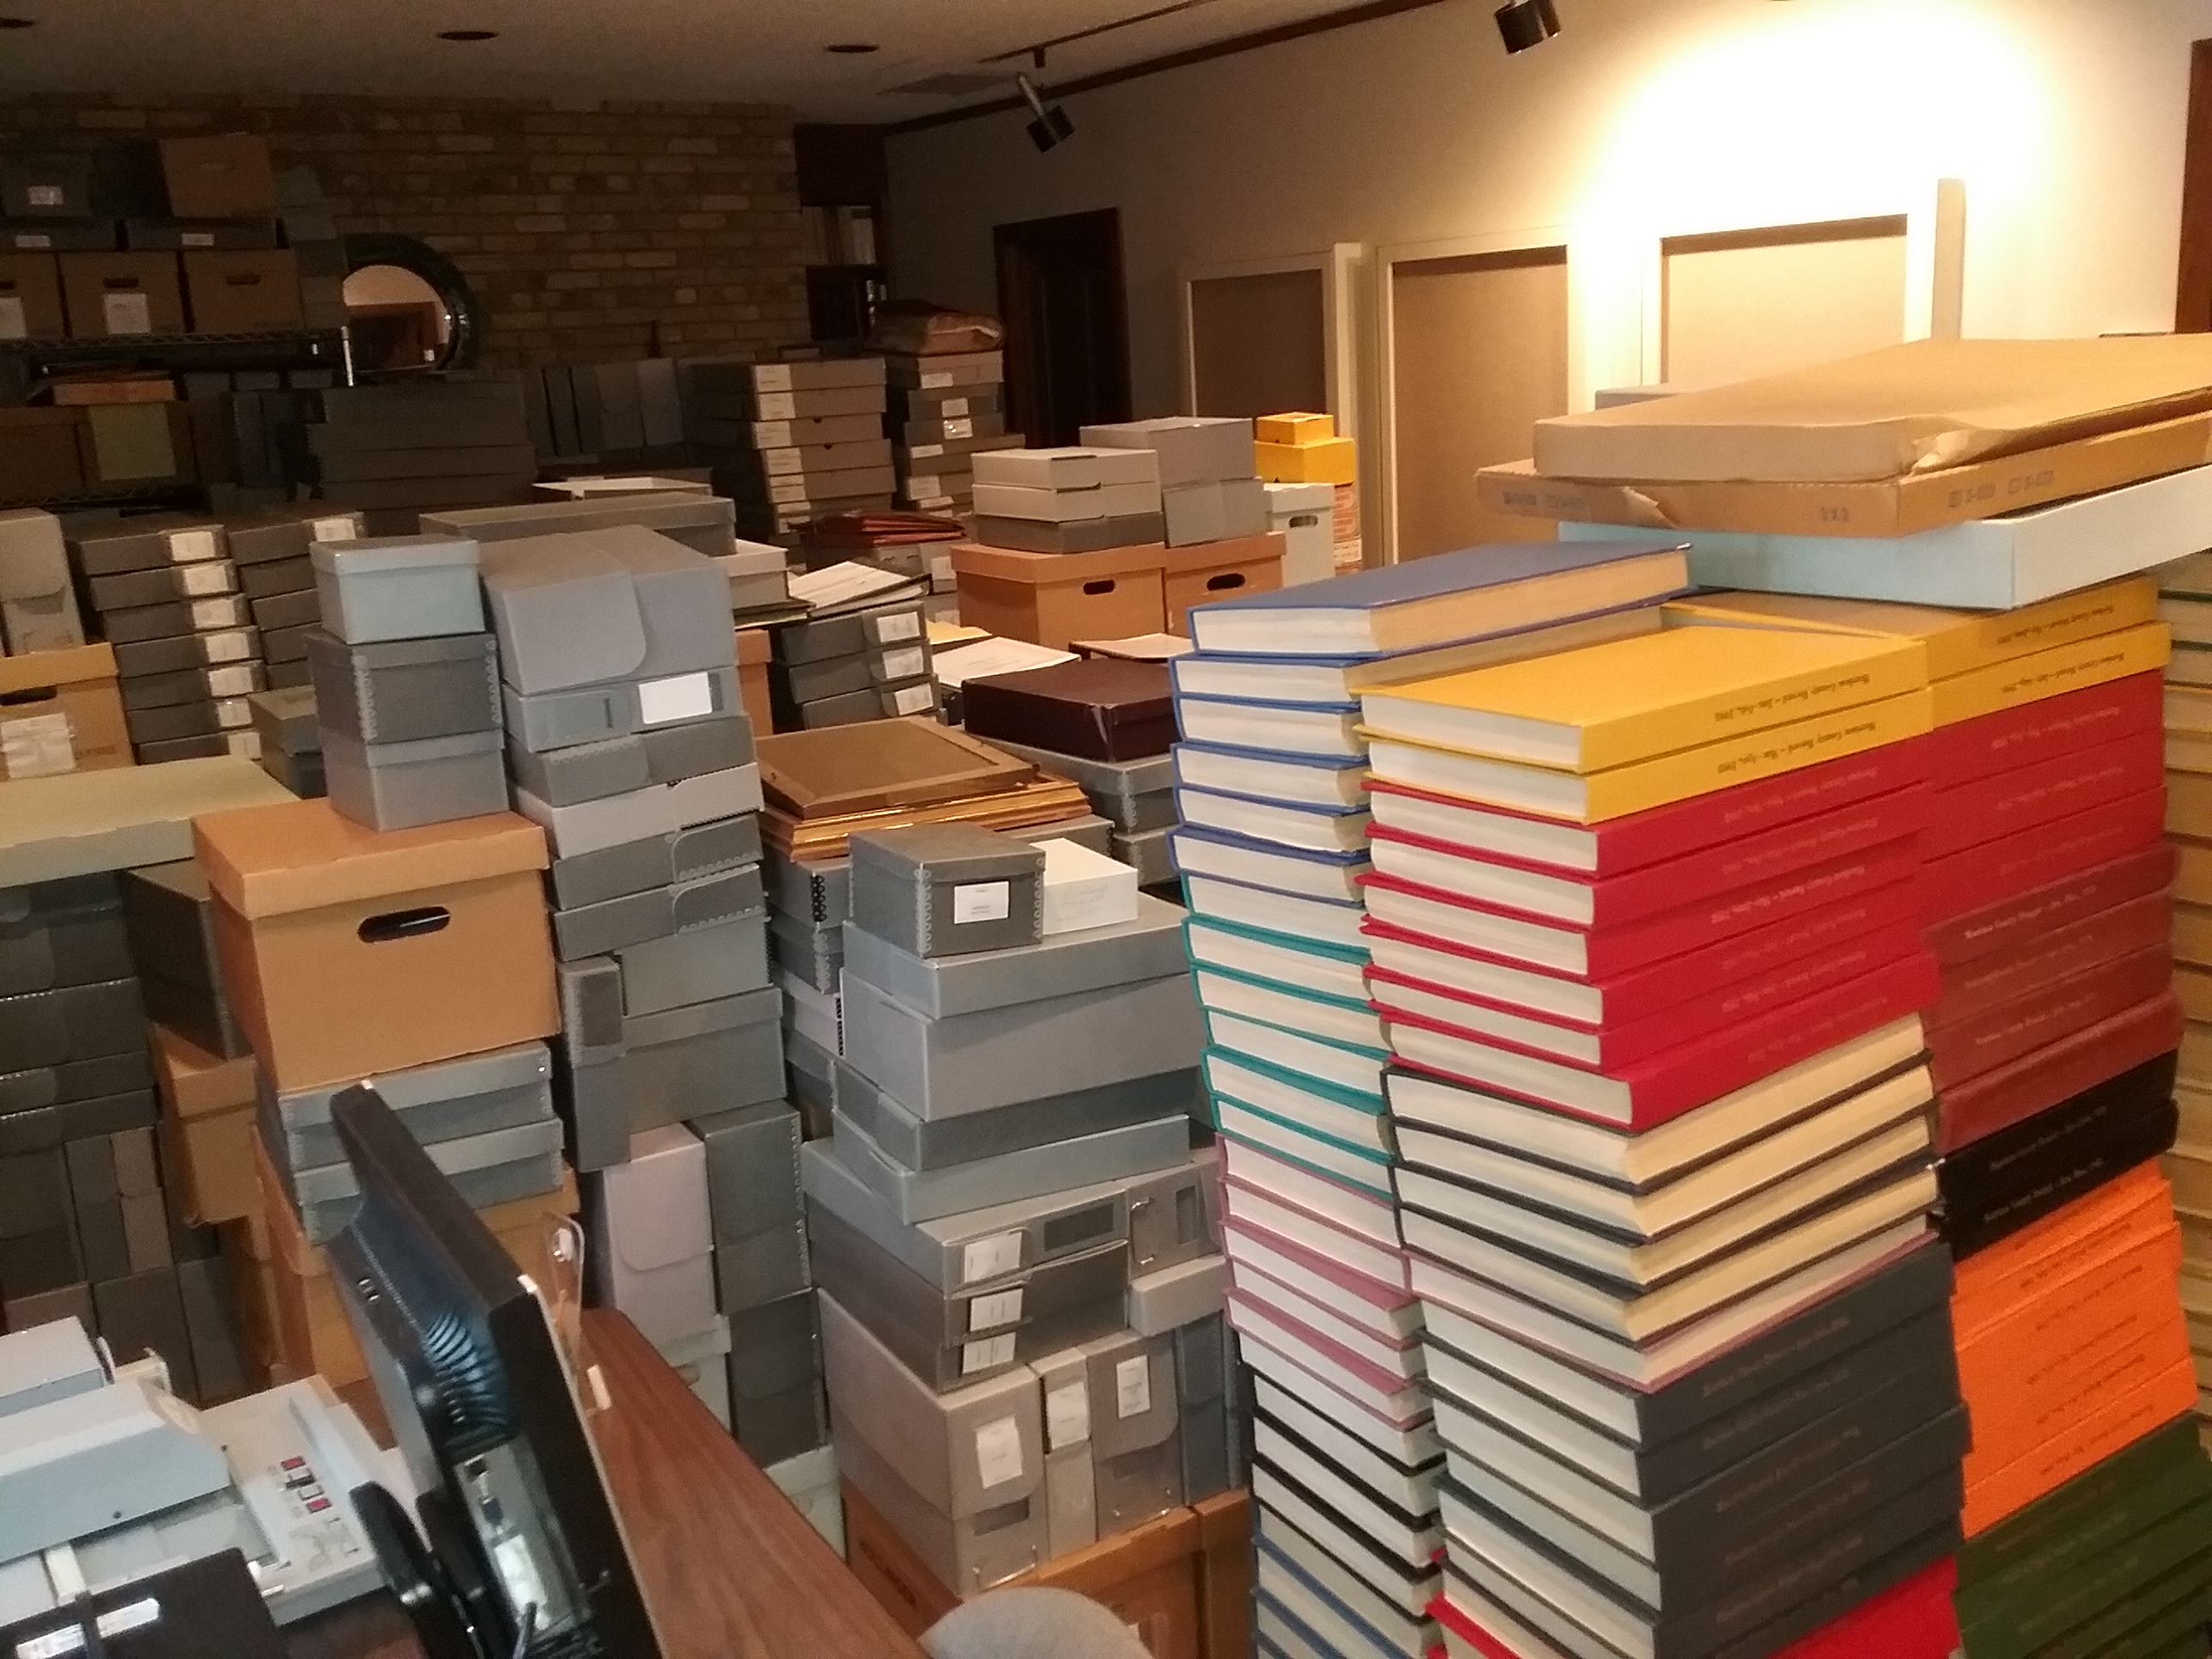 Rosenmeier Research Room at The Charles A. Weyerhaeuser Memorial Museum, Little Falls, MN, filled with archival materials due to mobile shelving project, November 13, 2019.